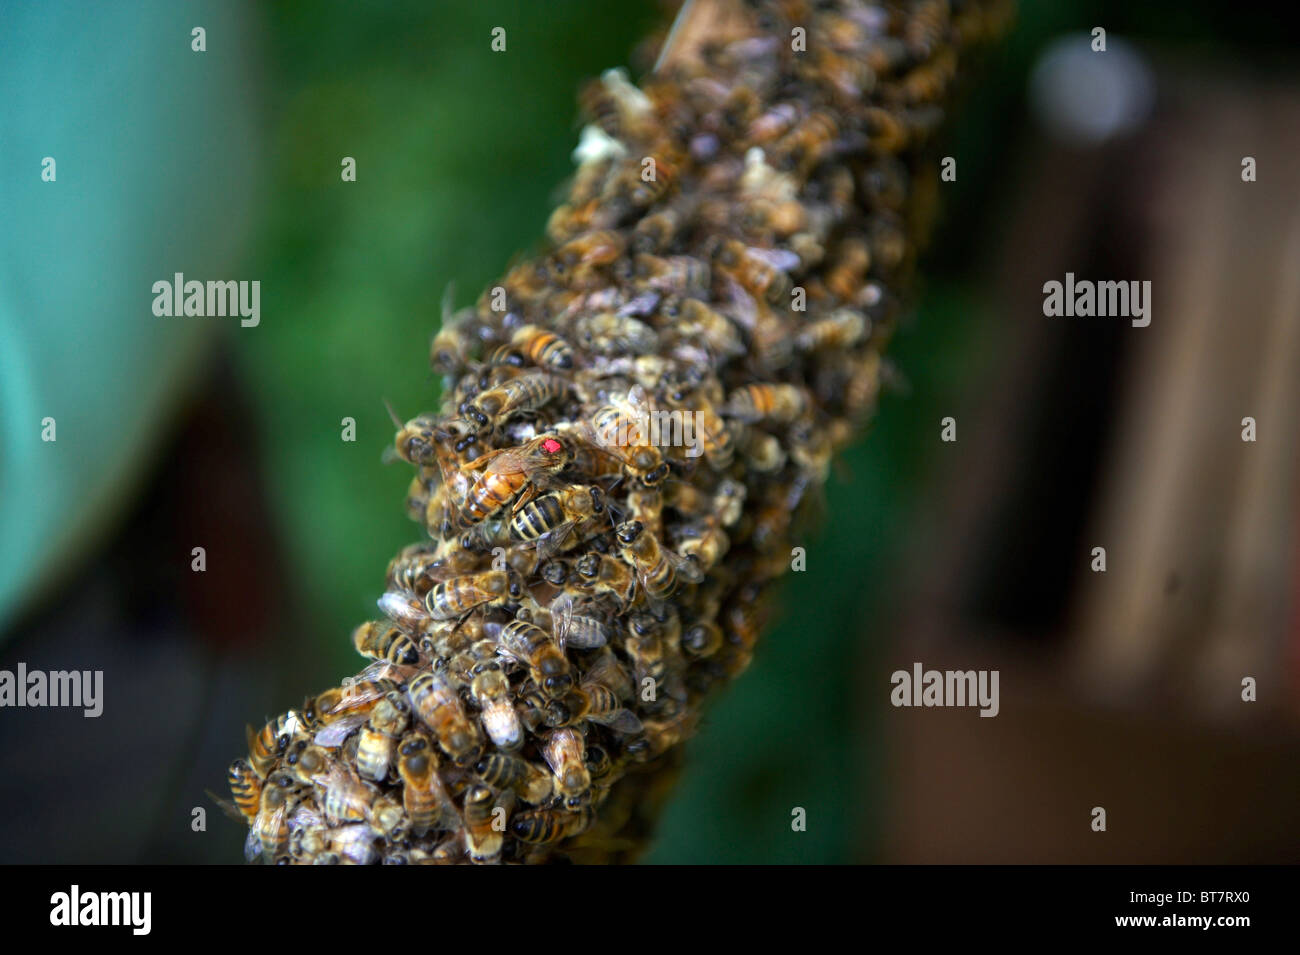 Cluster of honey bees, queen bee marked with red spot on a frame from a hive - Stock Image